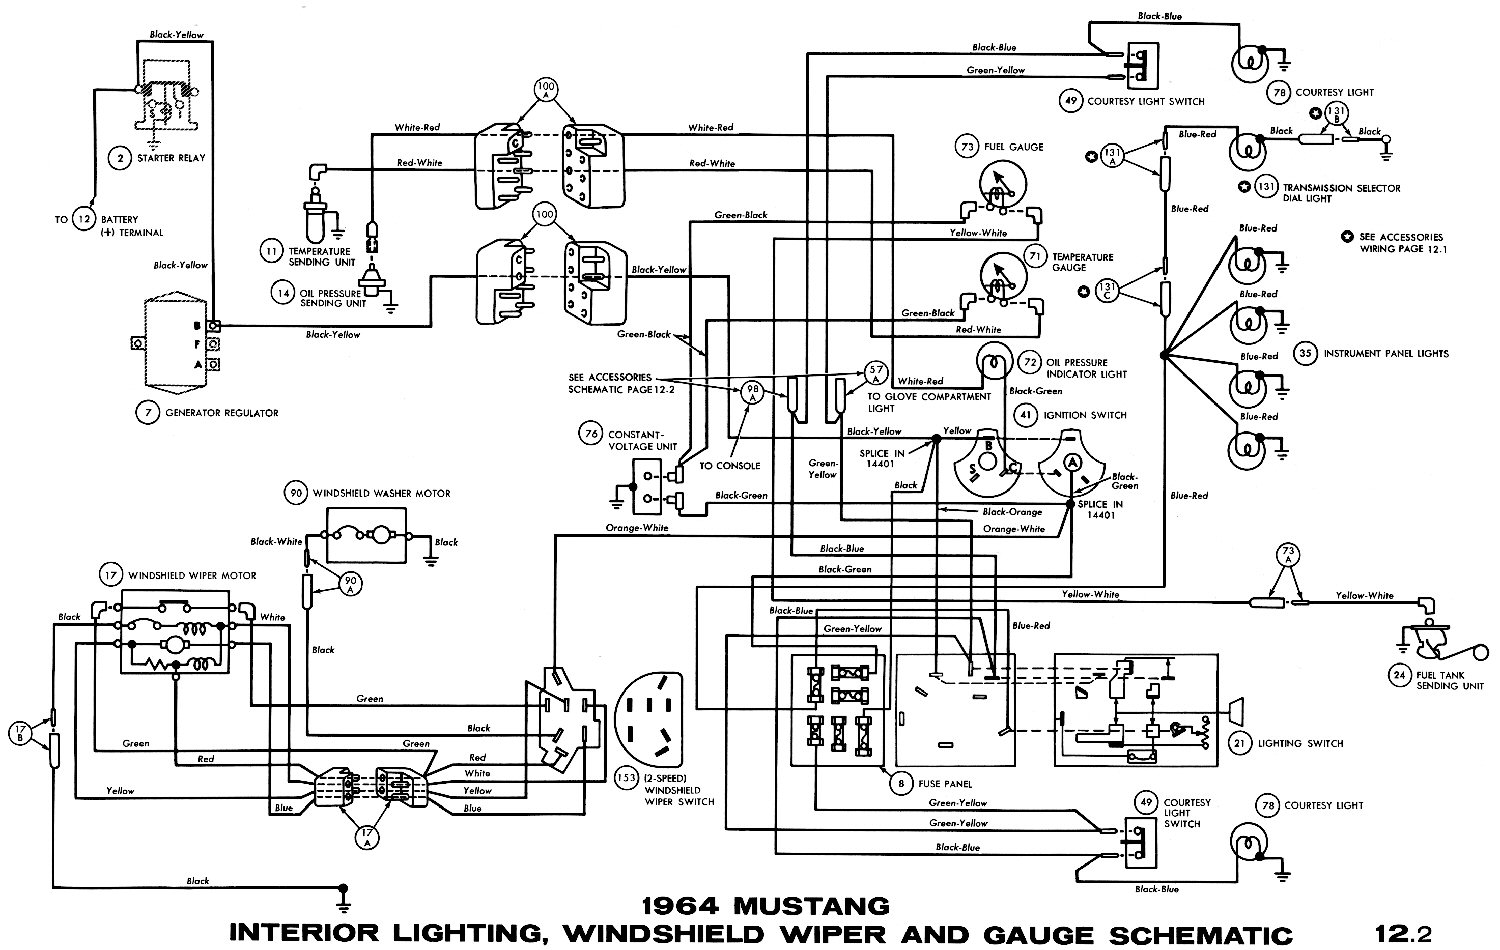 1964k 1964 mustang wiring diagrams average joe restoration 1966 mustang radio wiring diagram at bakdesigns.co